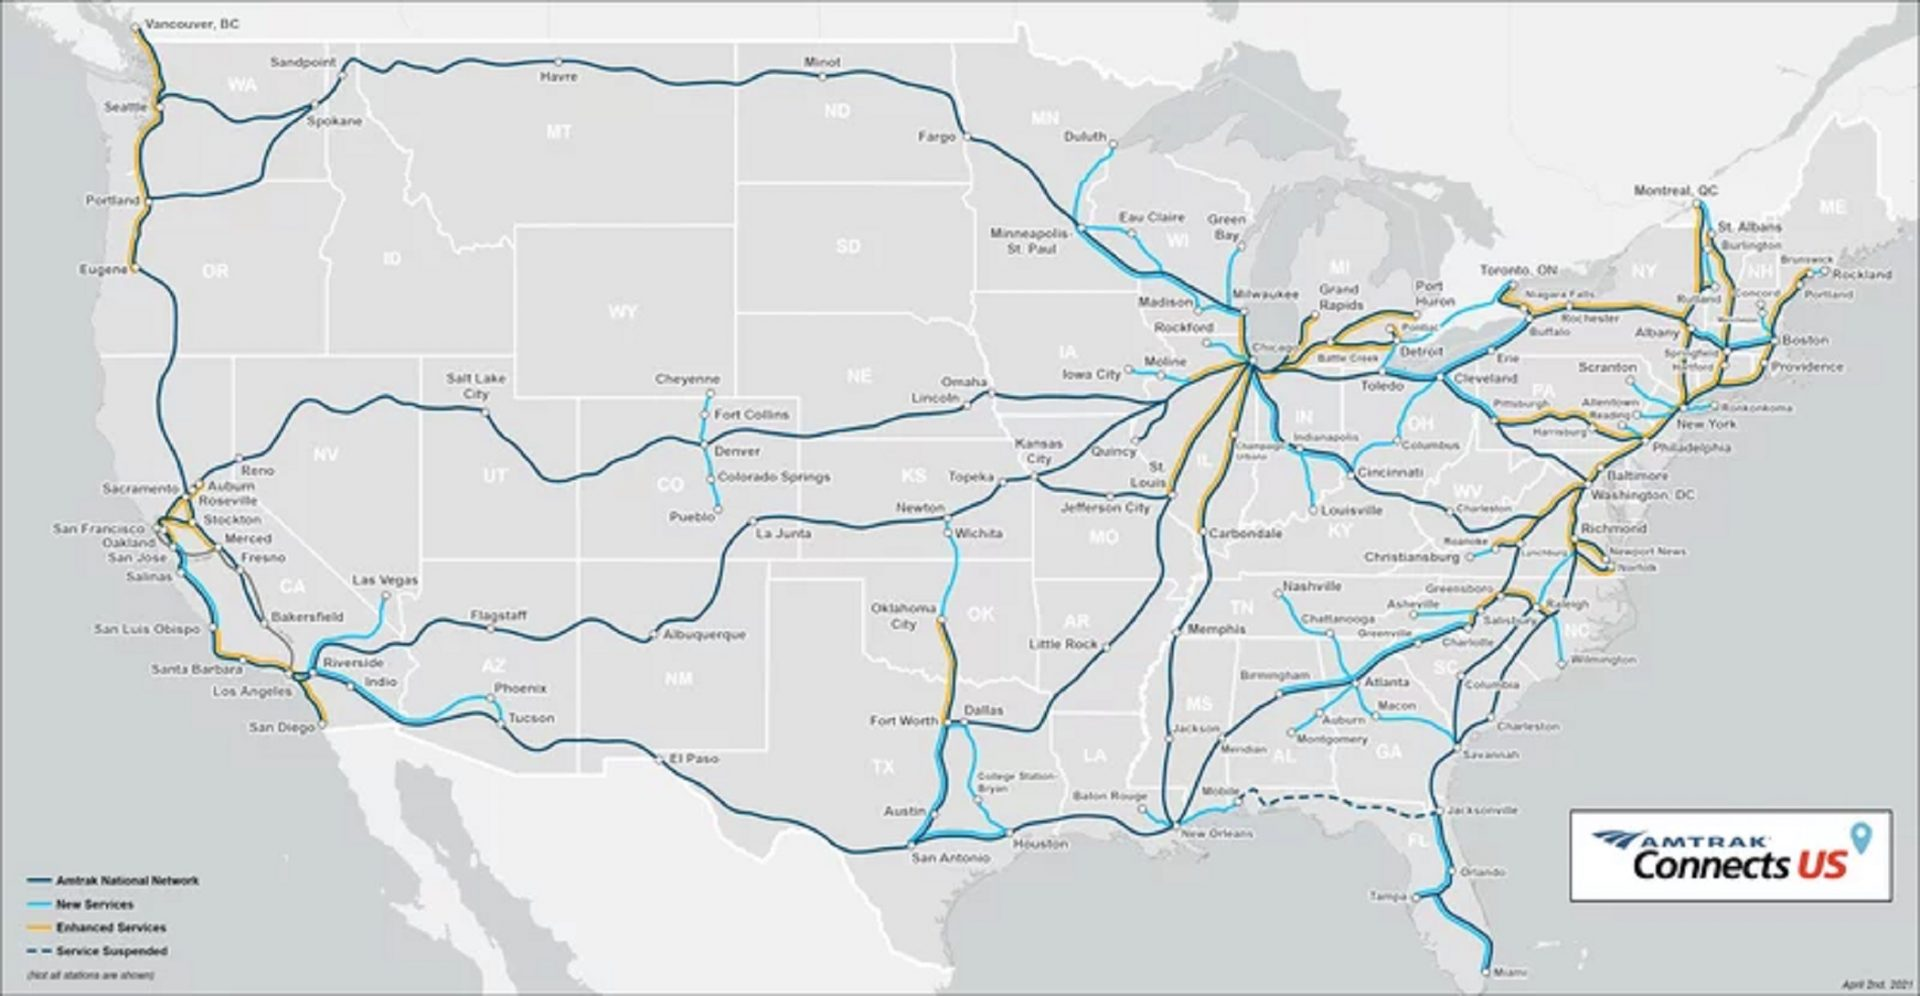 Amtrak has proposed a plan for new and enhanced rail connections across the United States